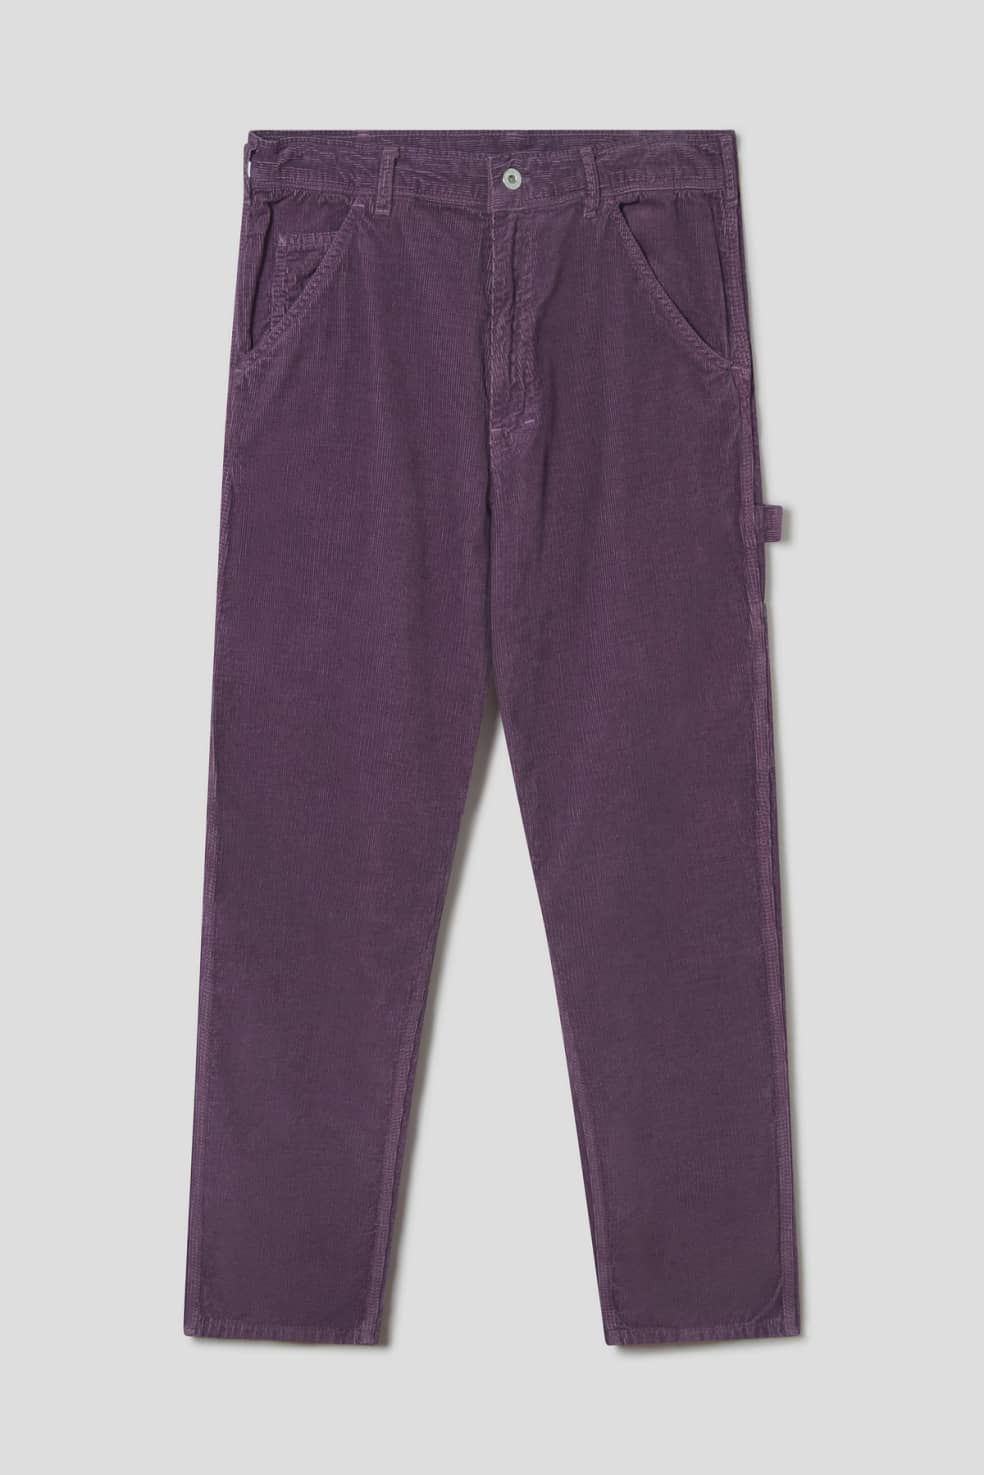 Stan Ray - 80's Painter Pant - Crushed Purple Cord | Trousers by Stan Ray 1